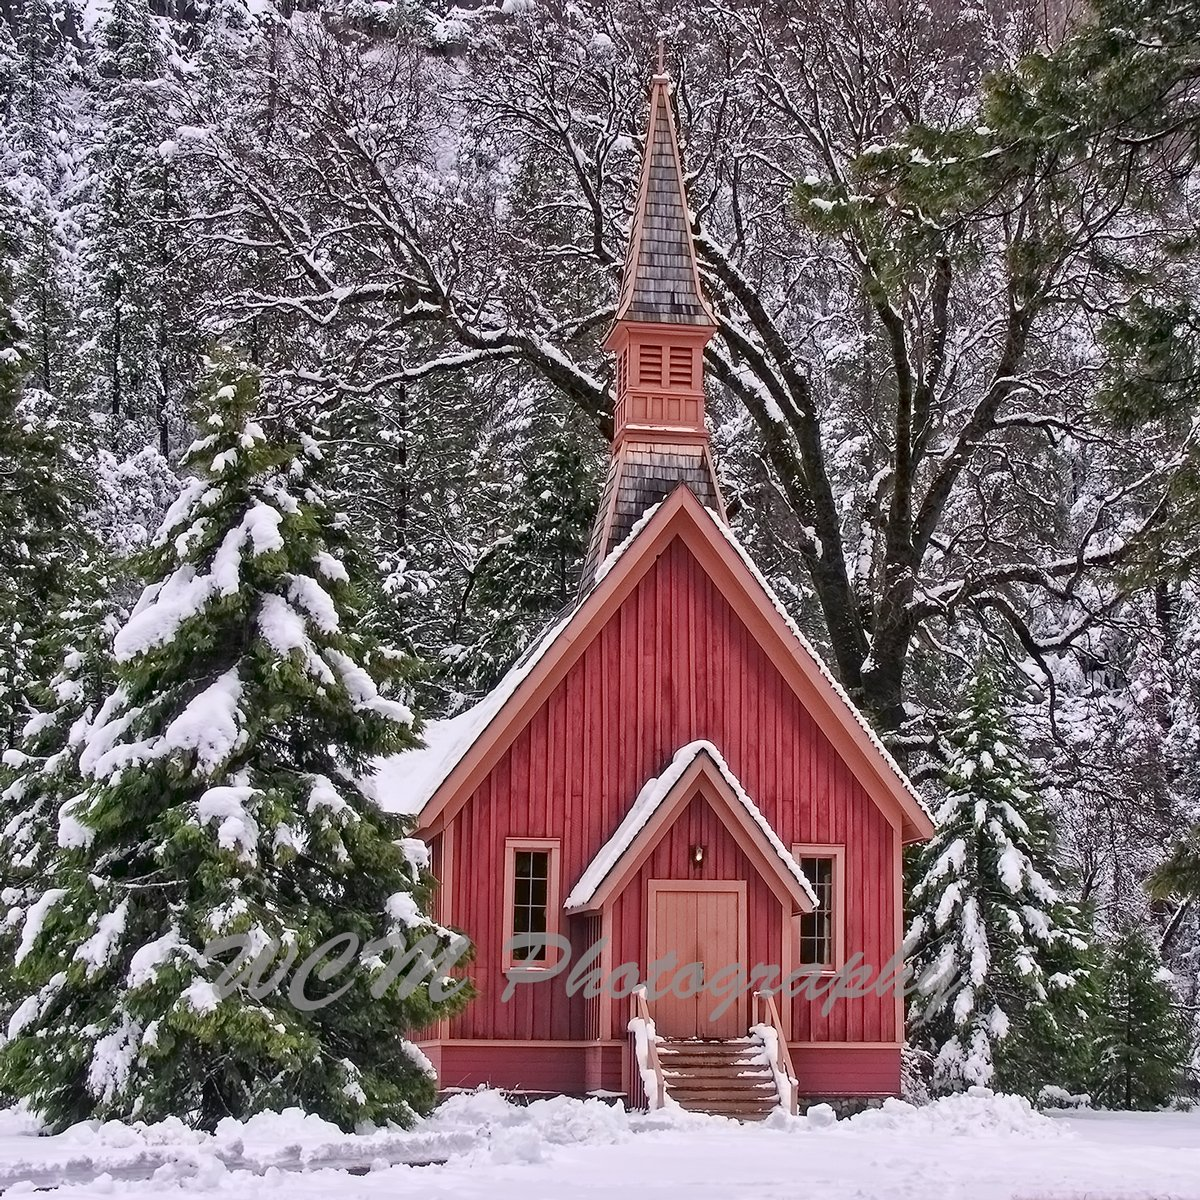 http://www.amazon.com/Chapel-Snow-Yosemite-National-California/dp/B00T7C9CVU/ref=sr_1_22?s=home-garden&ie=UTF8&qid=1423541536&sr=1-22&keywords=WCM+Photography